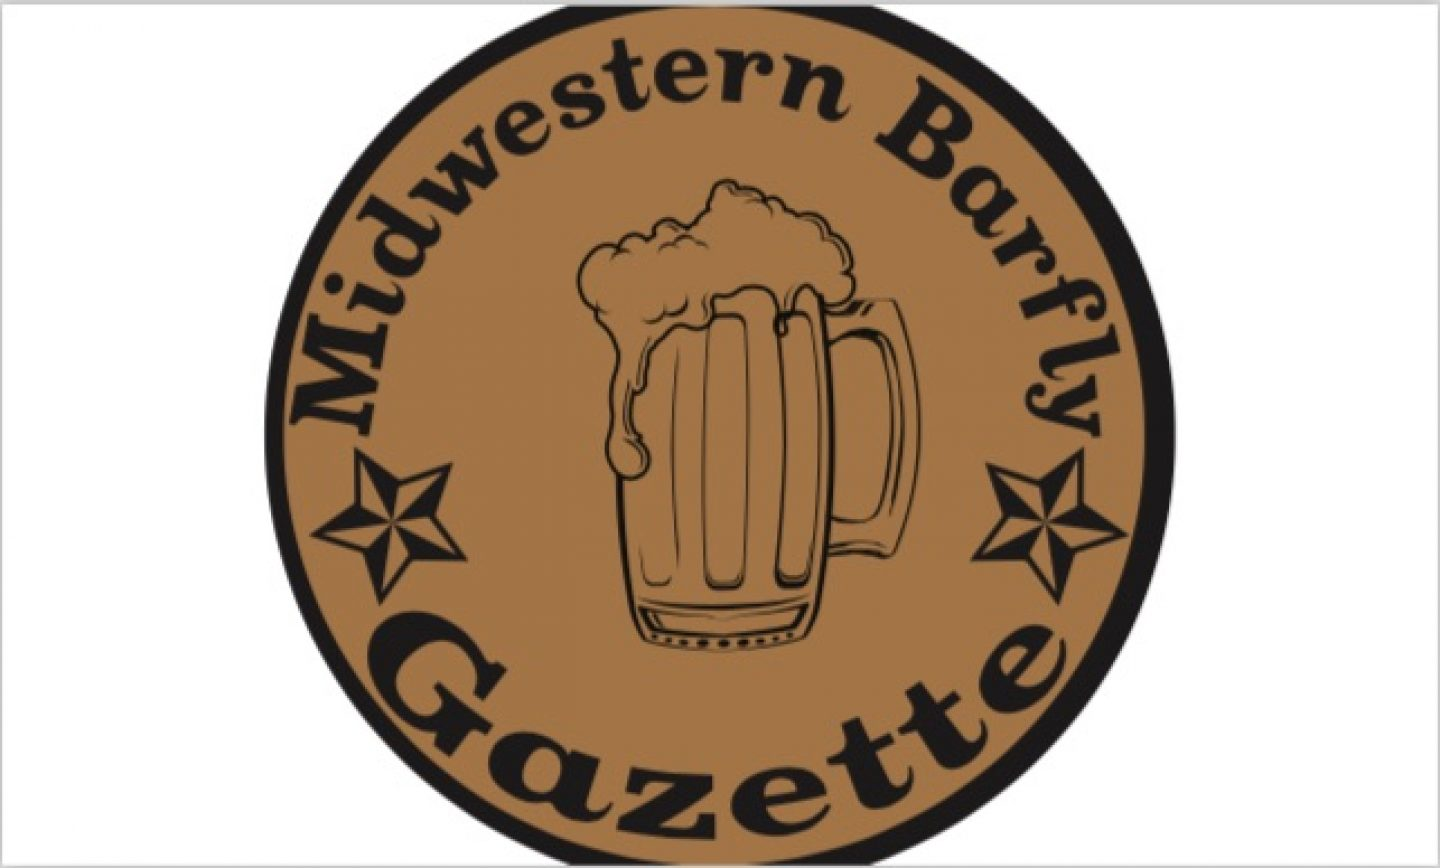 The Midwestern Barfly Gazette